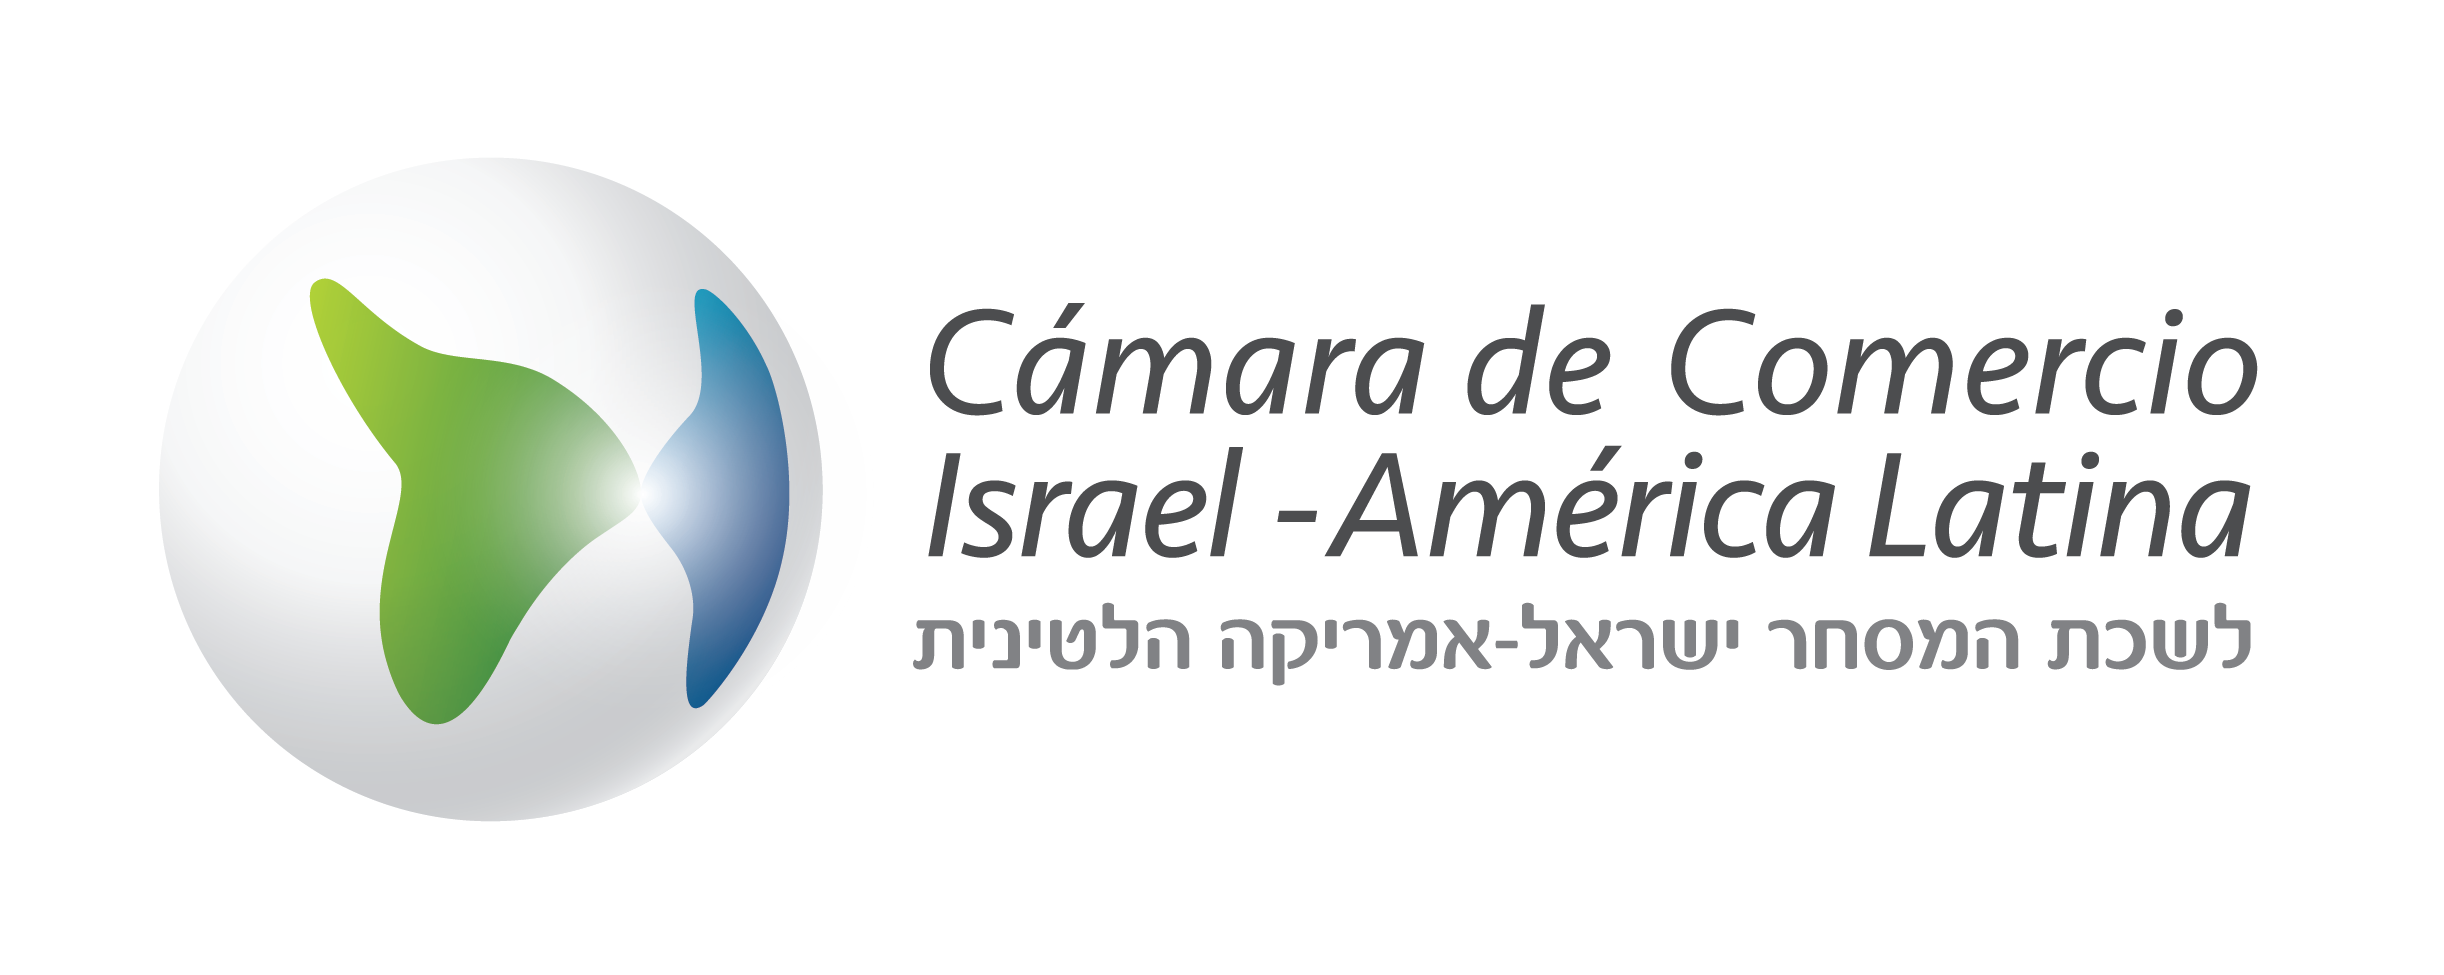 Israel Latin America Chamber of Commerce